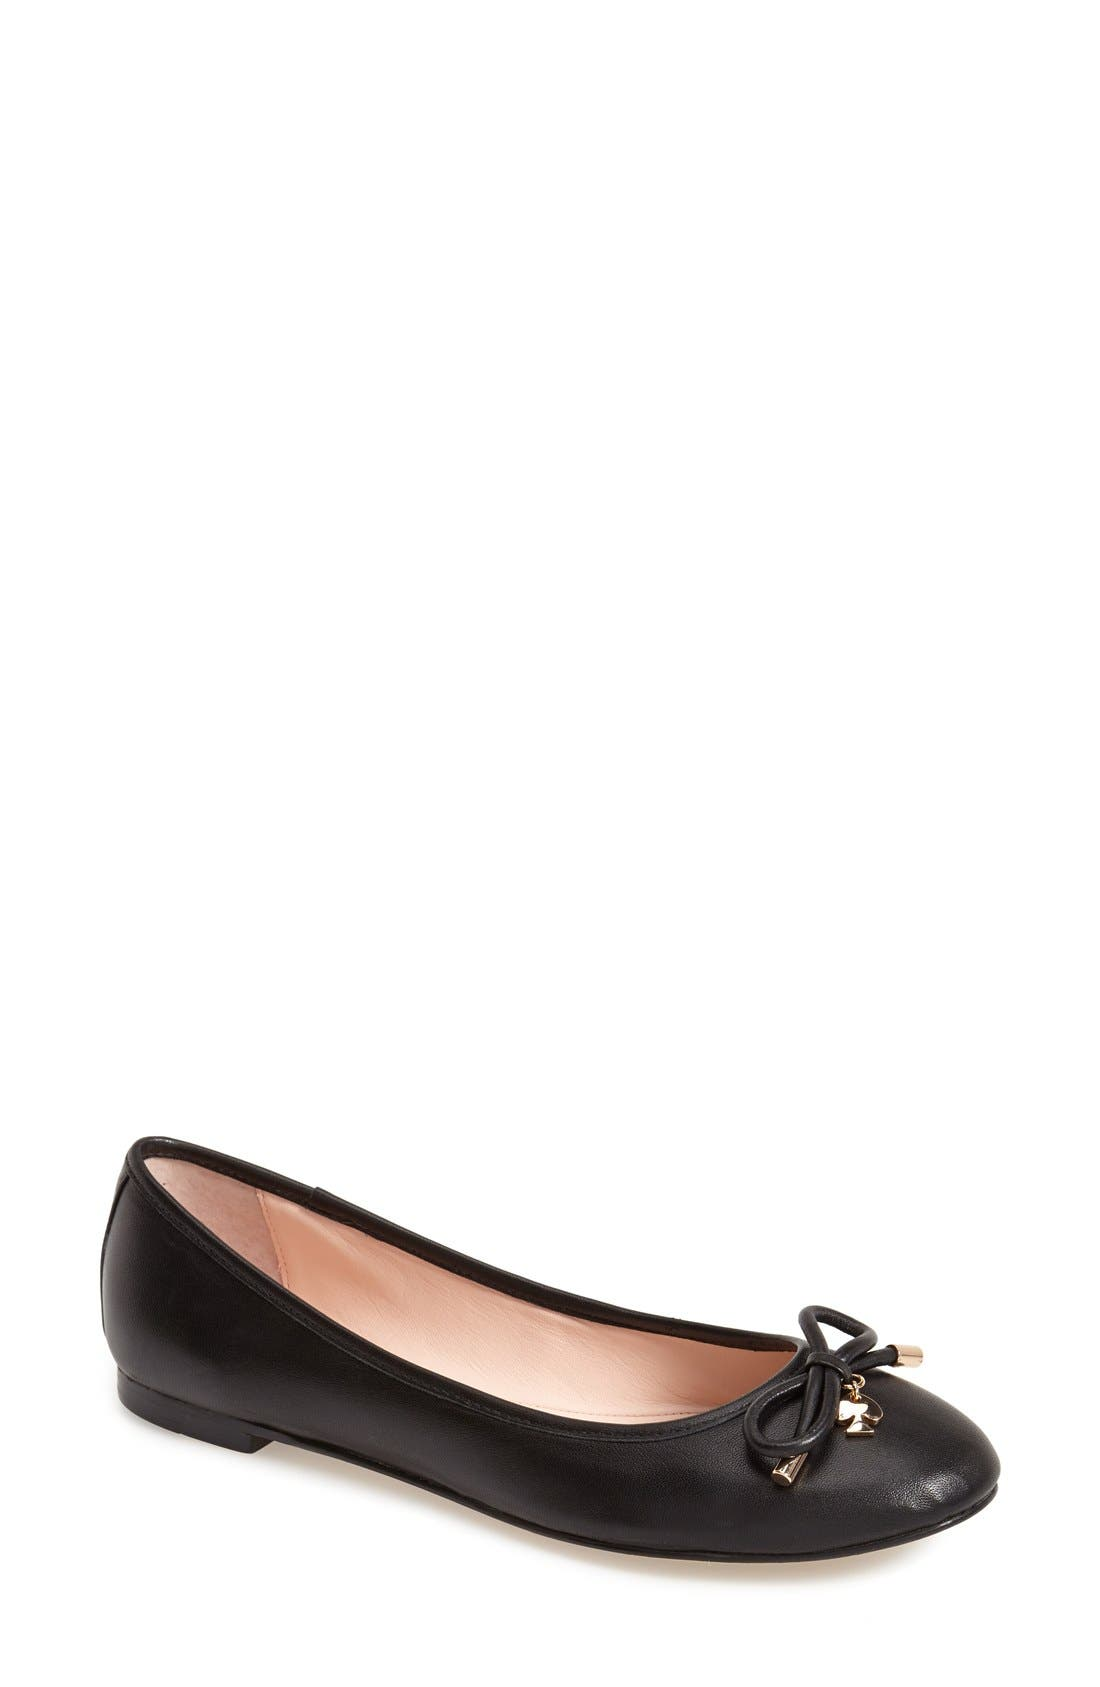 KATE SPADE NEW YORK willa skimmer flat